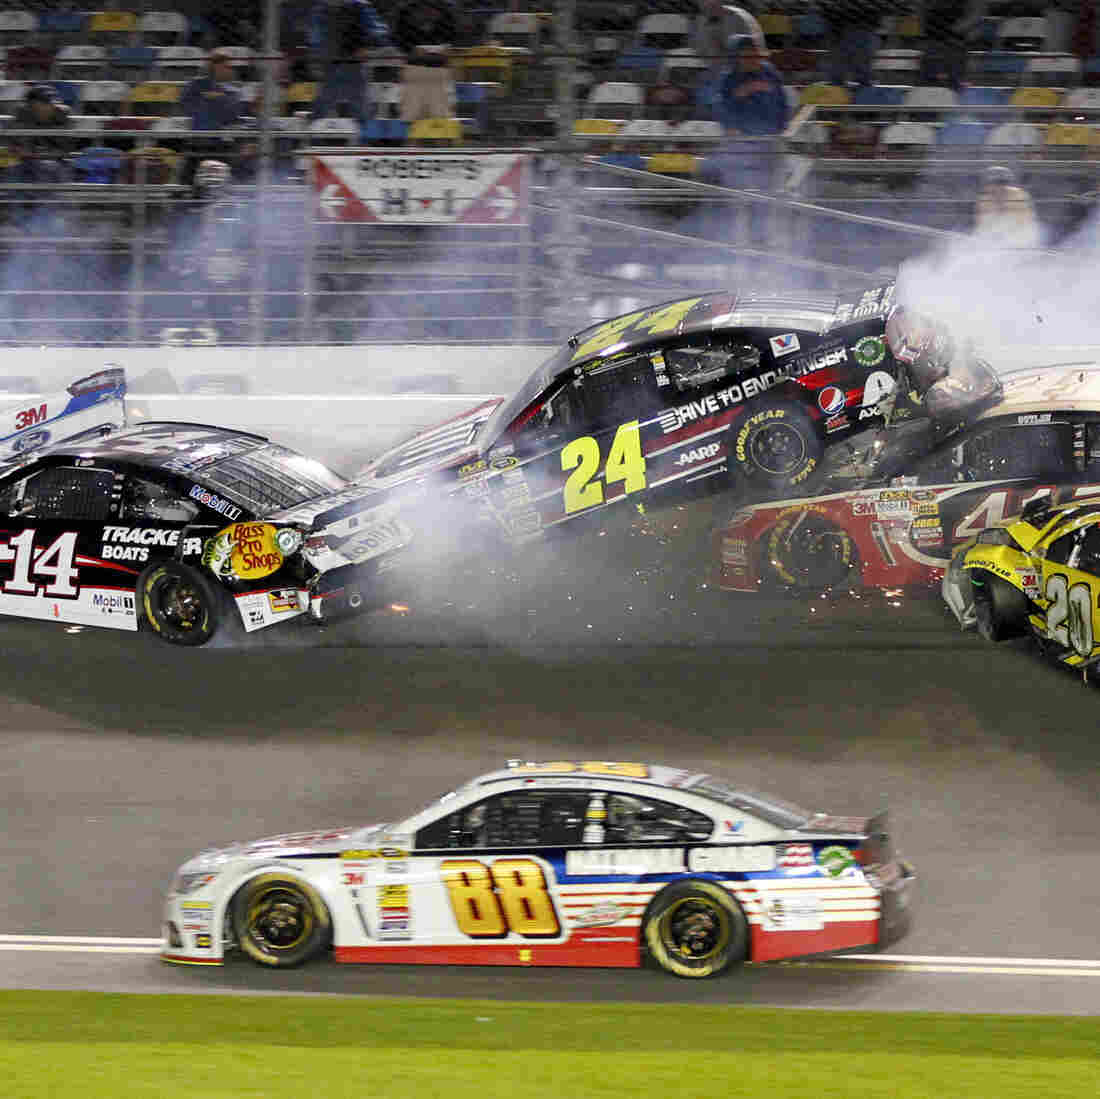 The wrecks are not enough of a draw, so NASCAR is changing its playoff points system to help increase viewership.